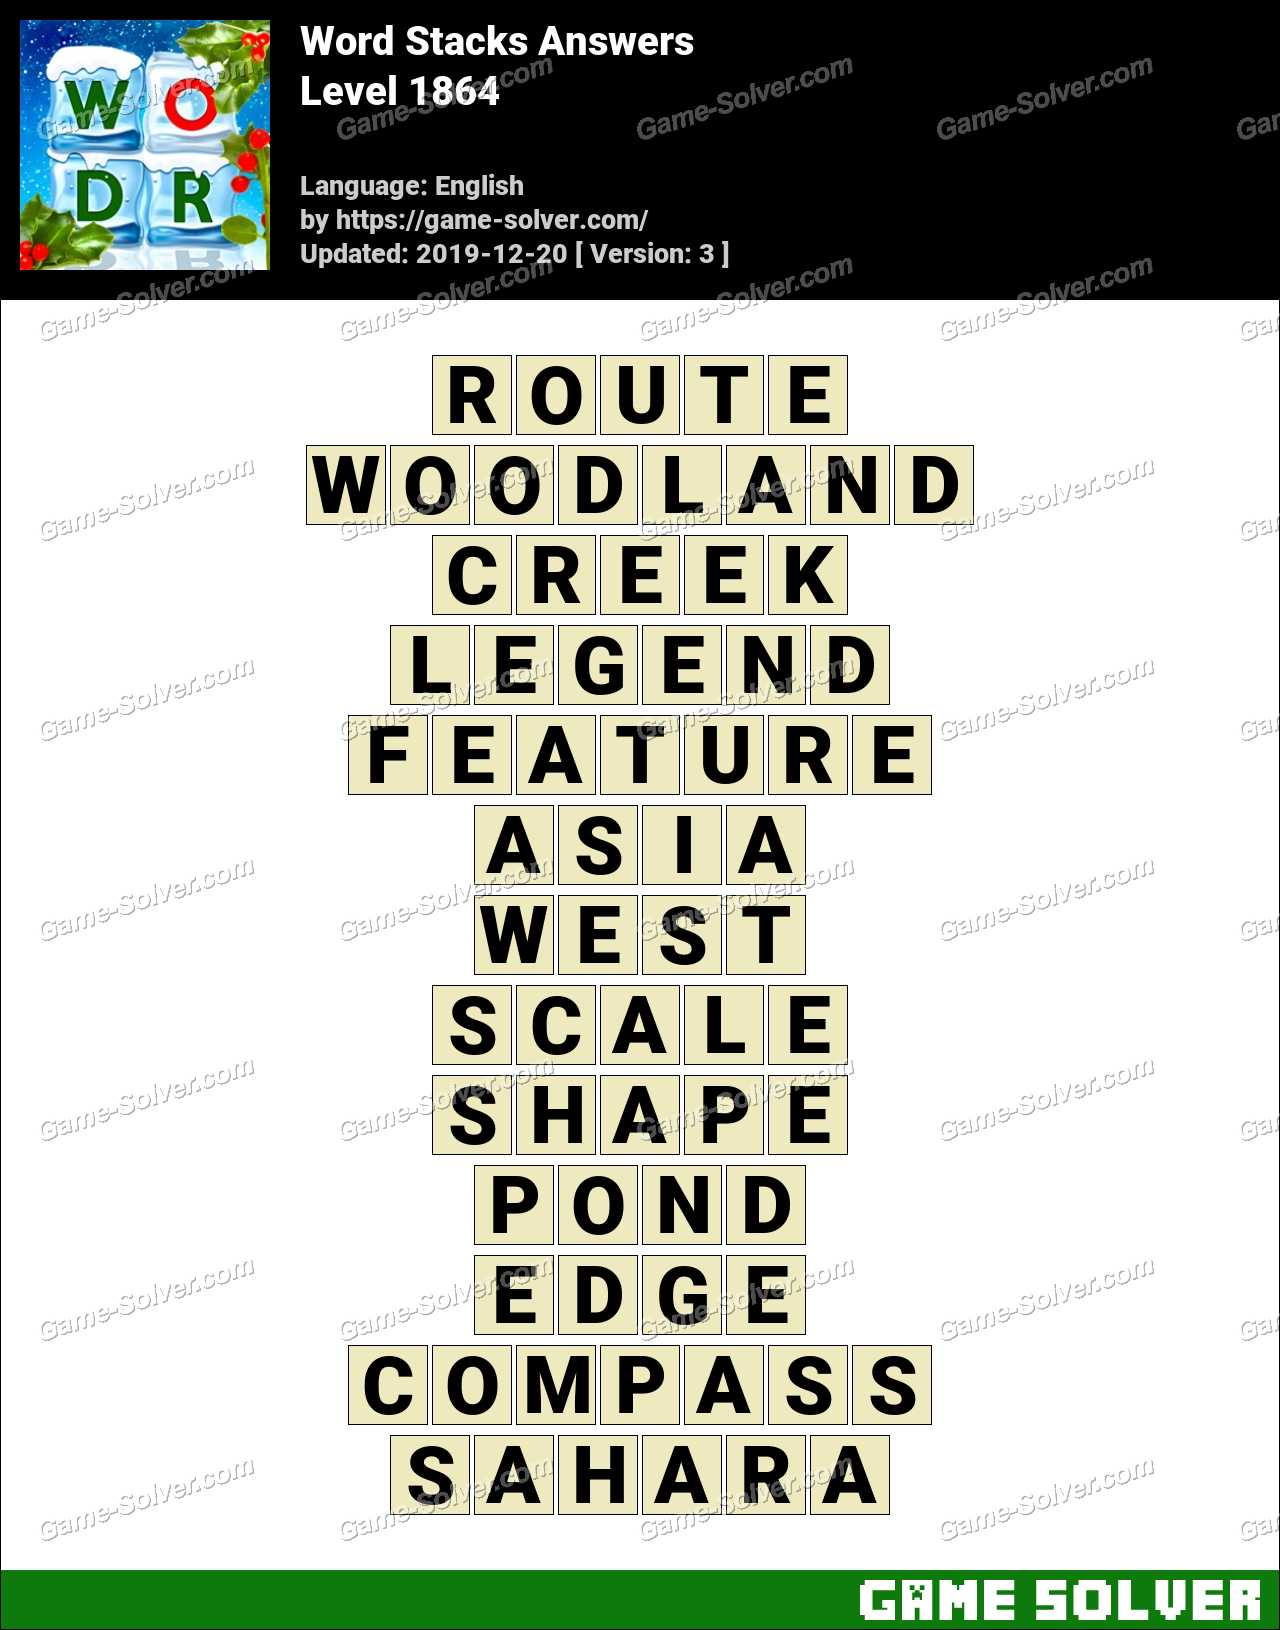 Word Stacks Level 1864 Answers